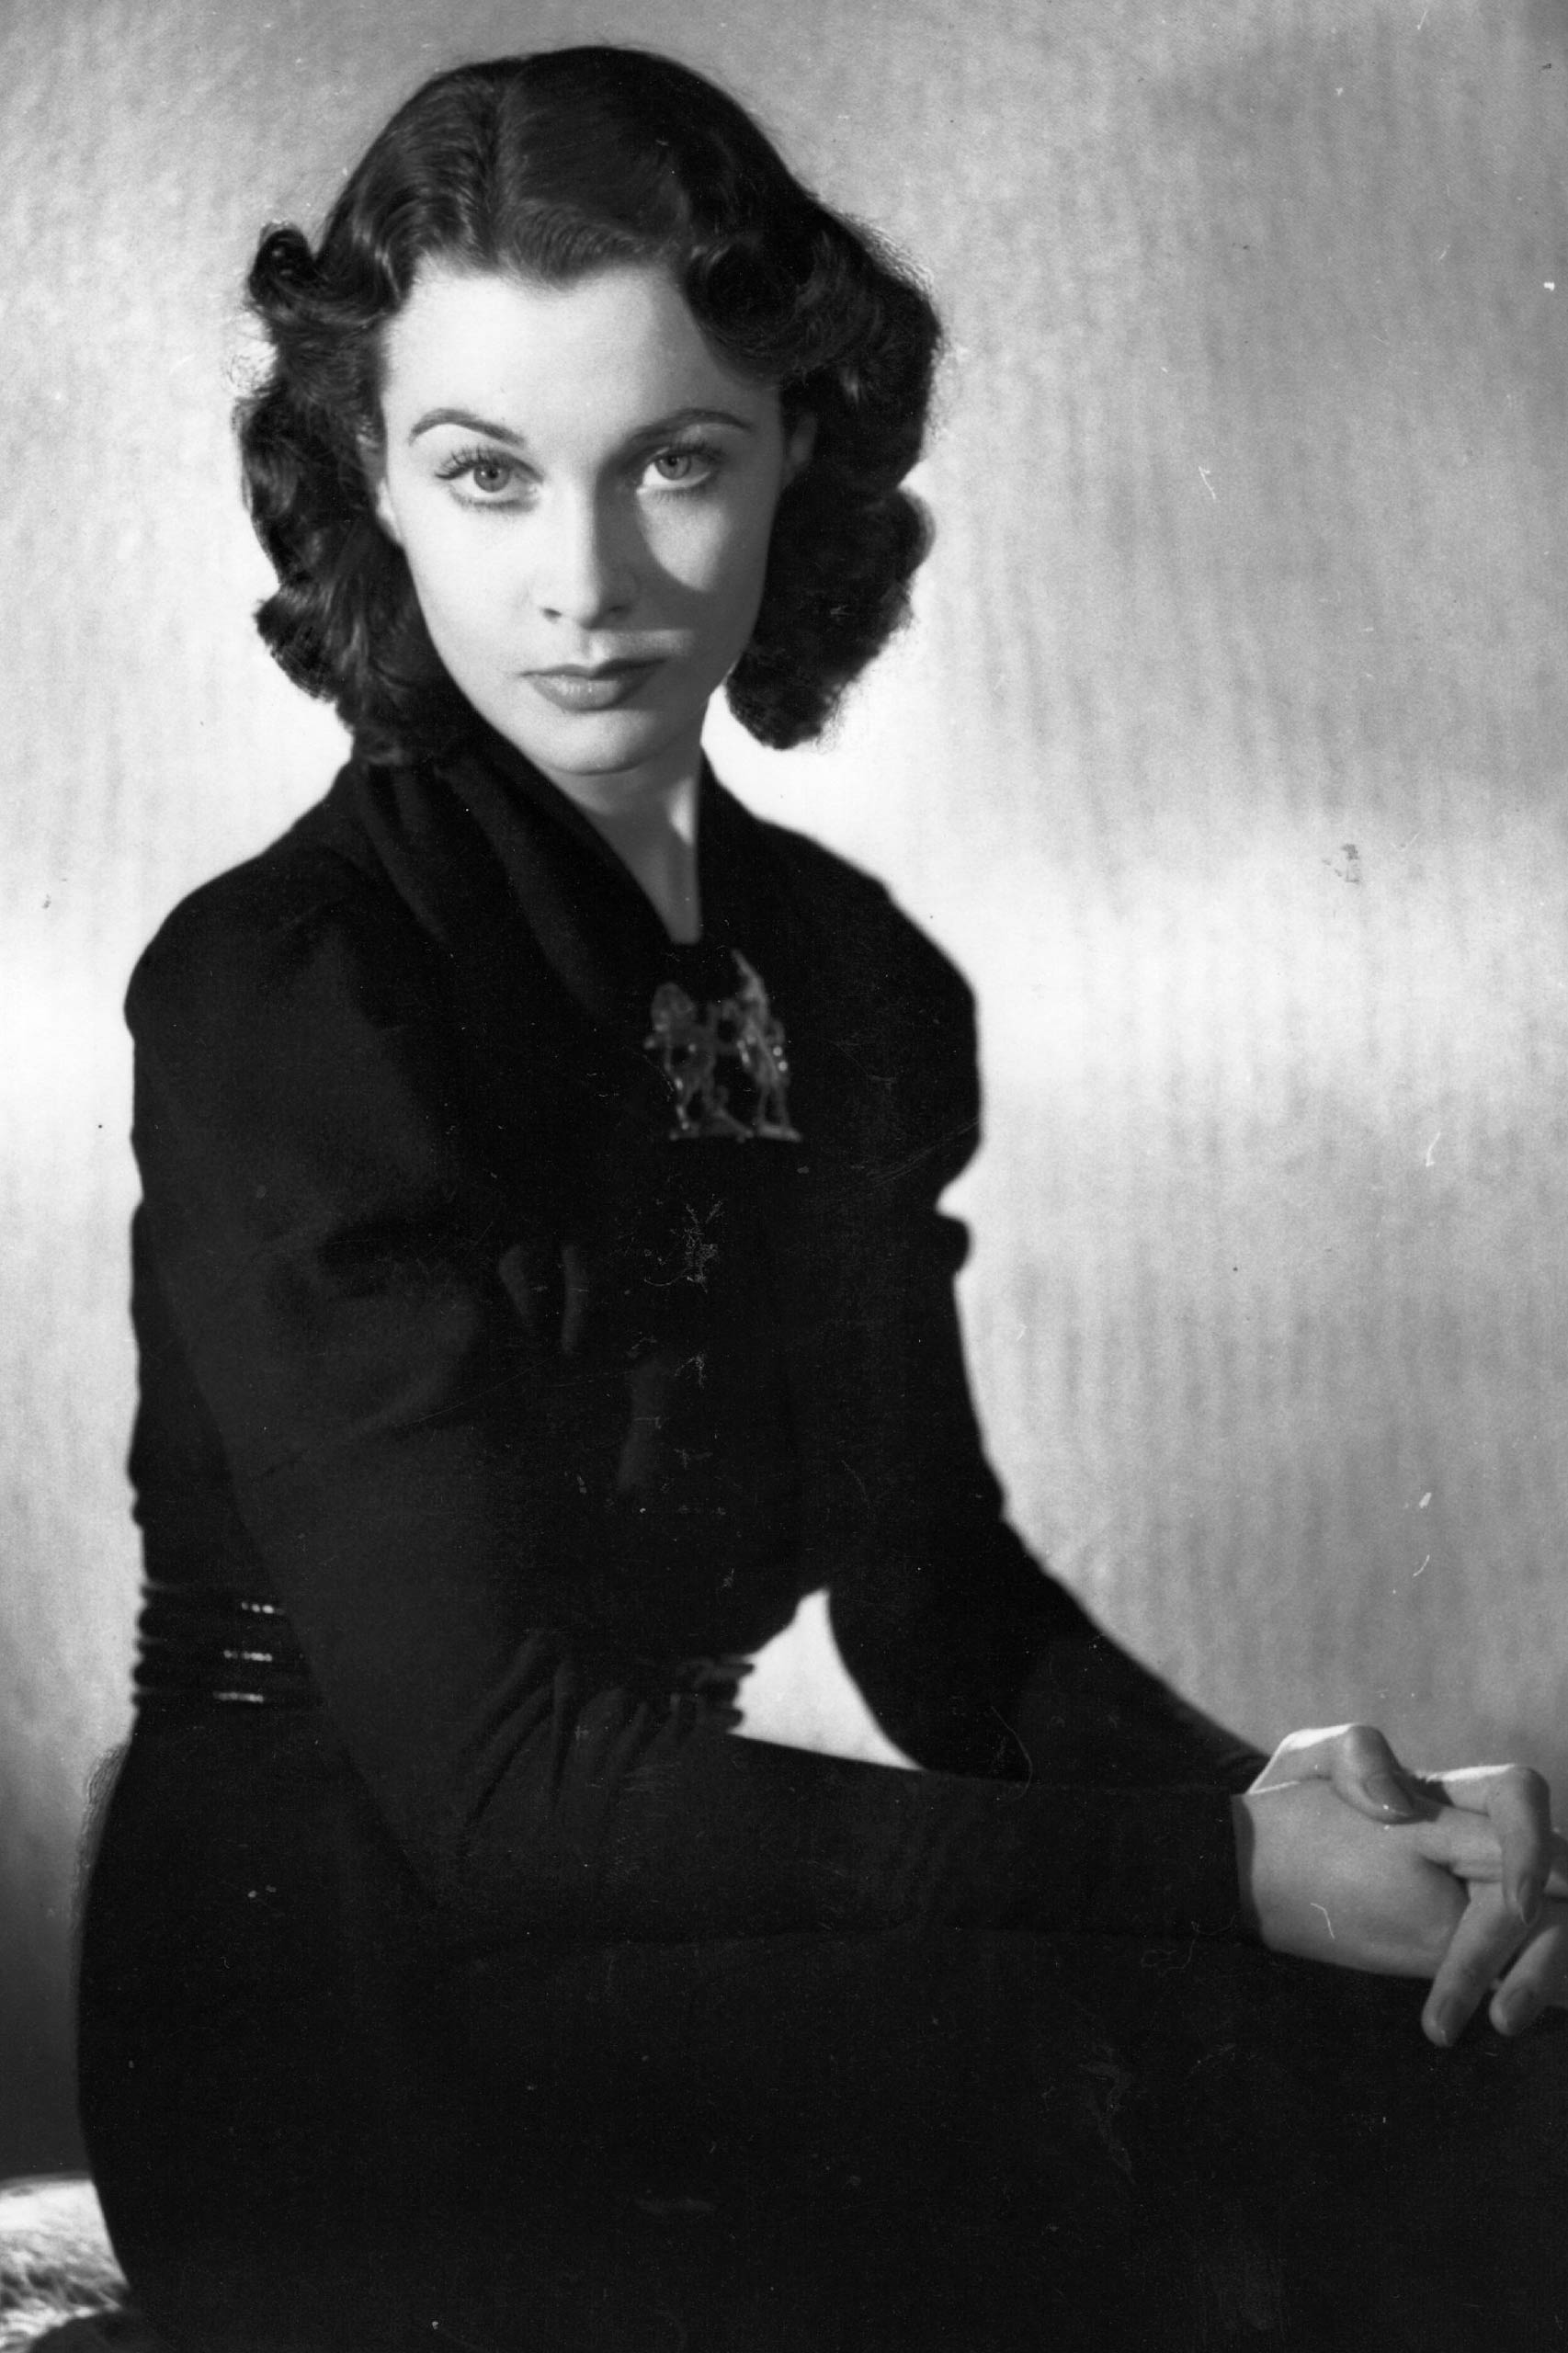 <strong>1940: Vivien Leigh - <i>Gone with the Wind</i>                                   1952: Vivien Leigh - <i>A Streetcar Named Desire</i></strong>